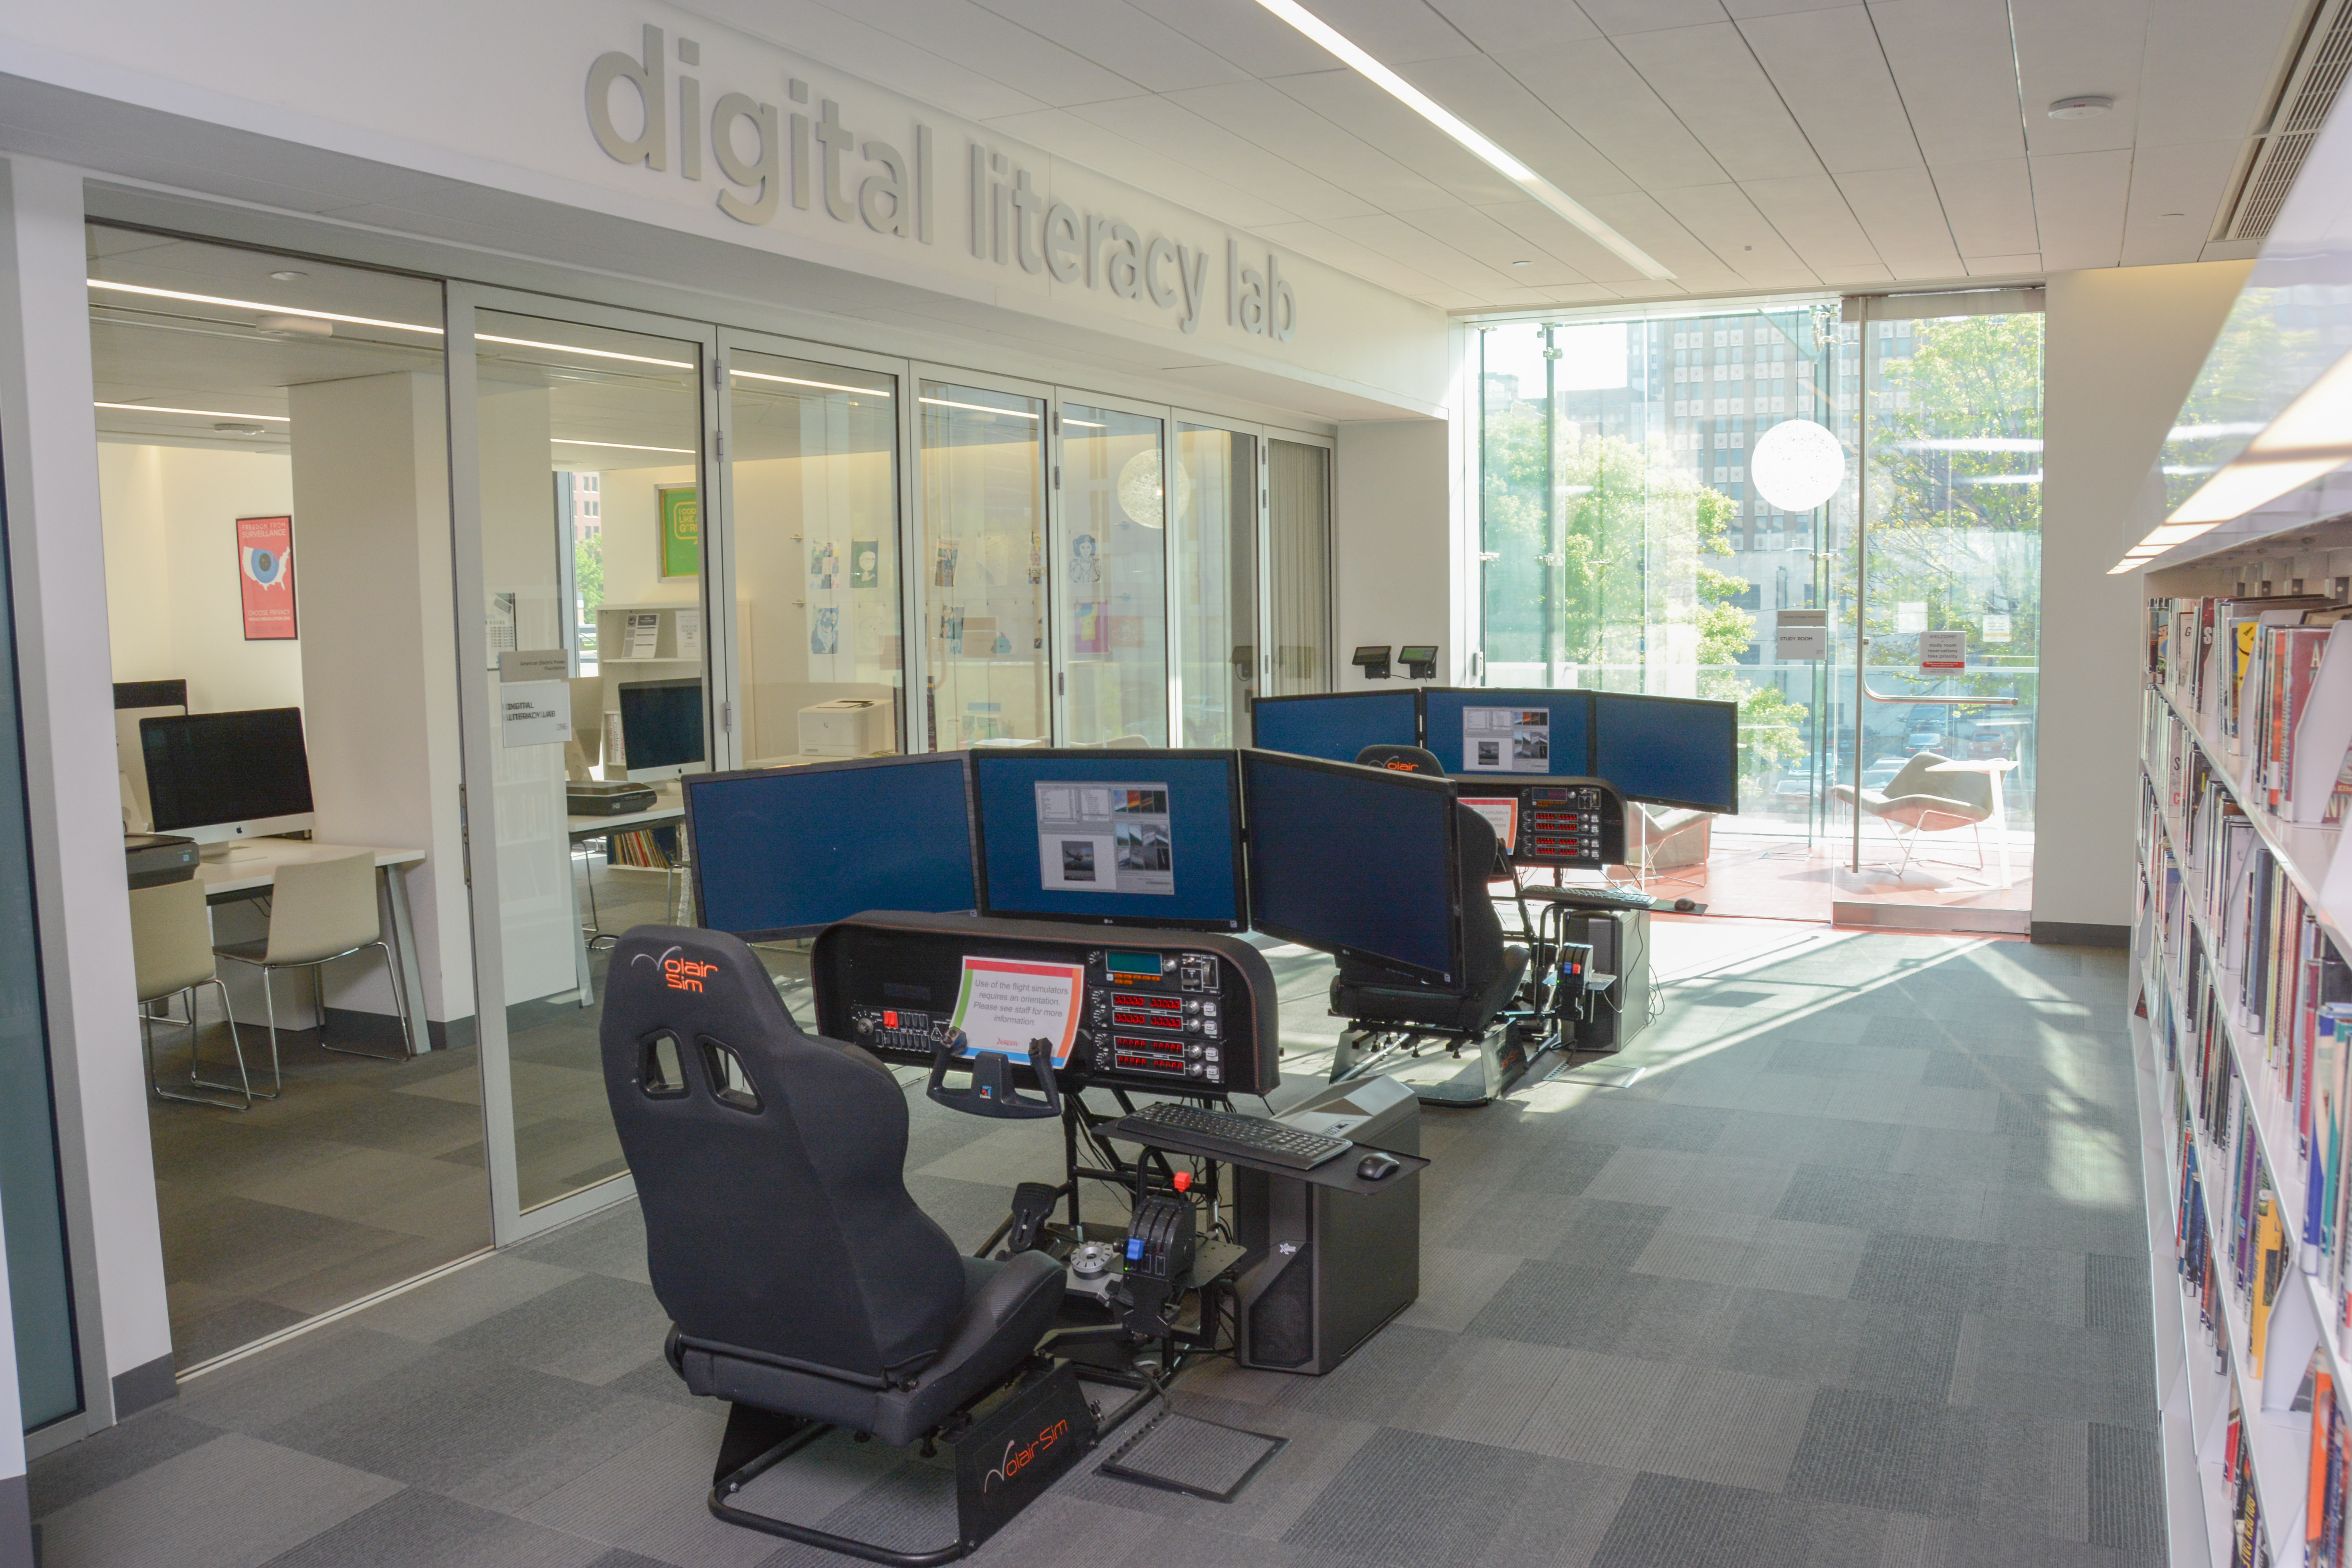 Digital Literacy Lab